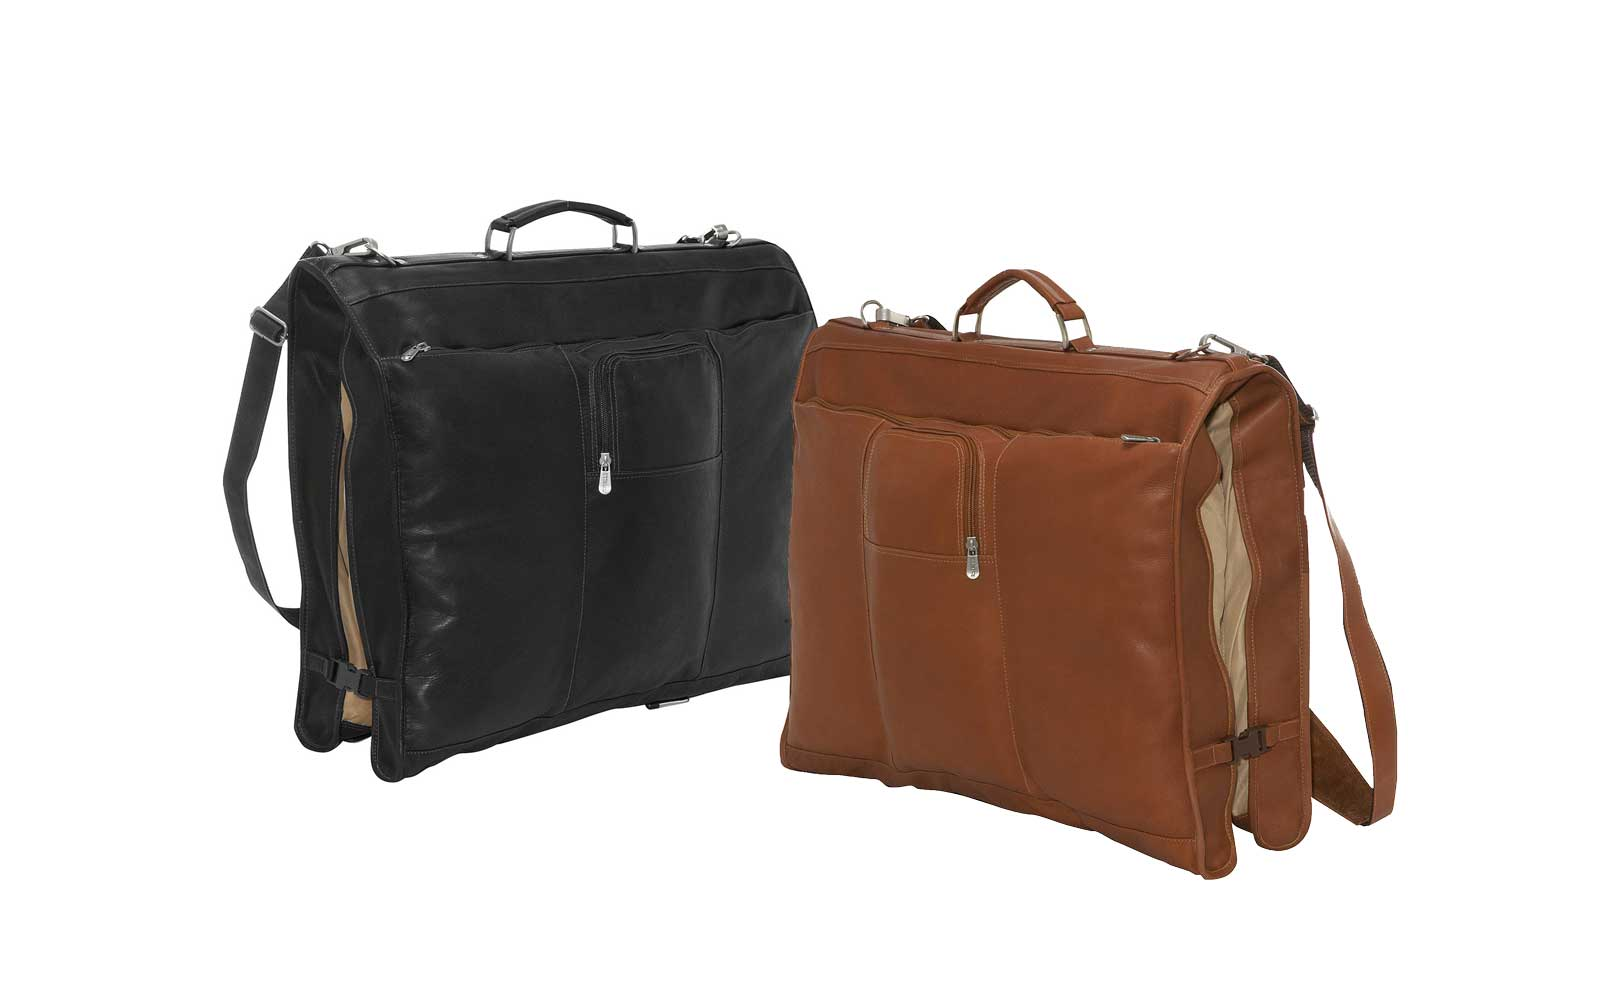 The Best Garment Bags For Travel Leisure